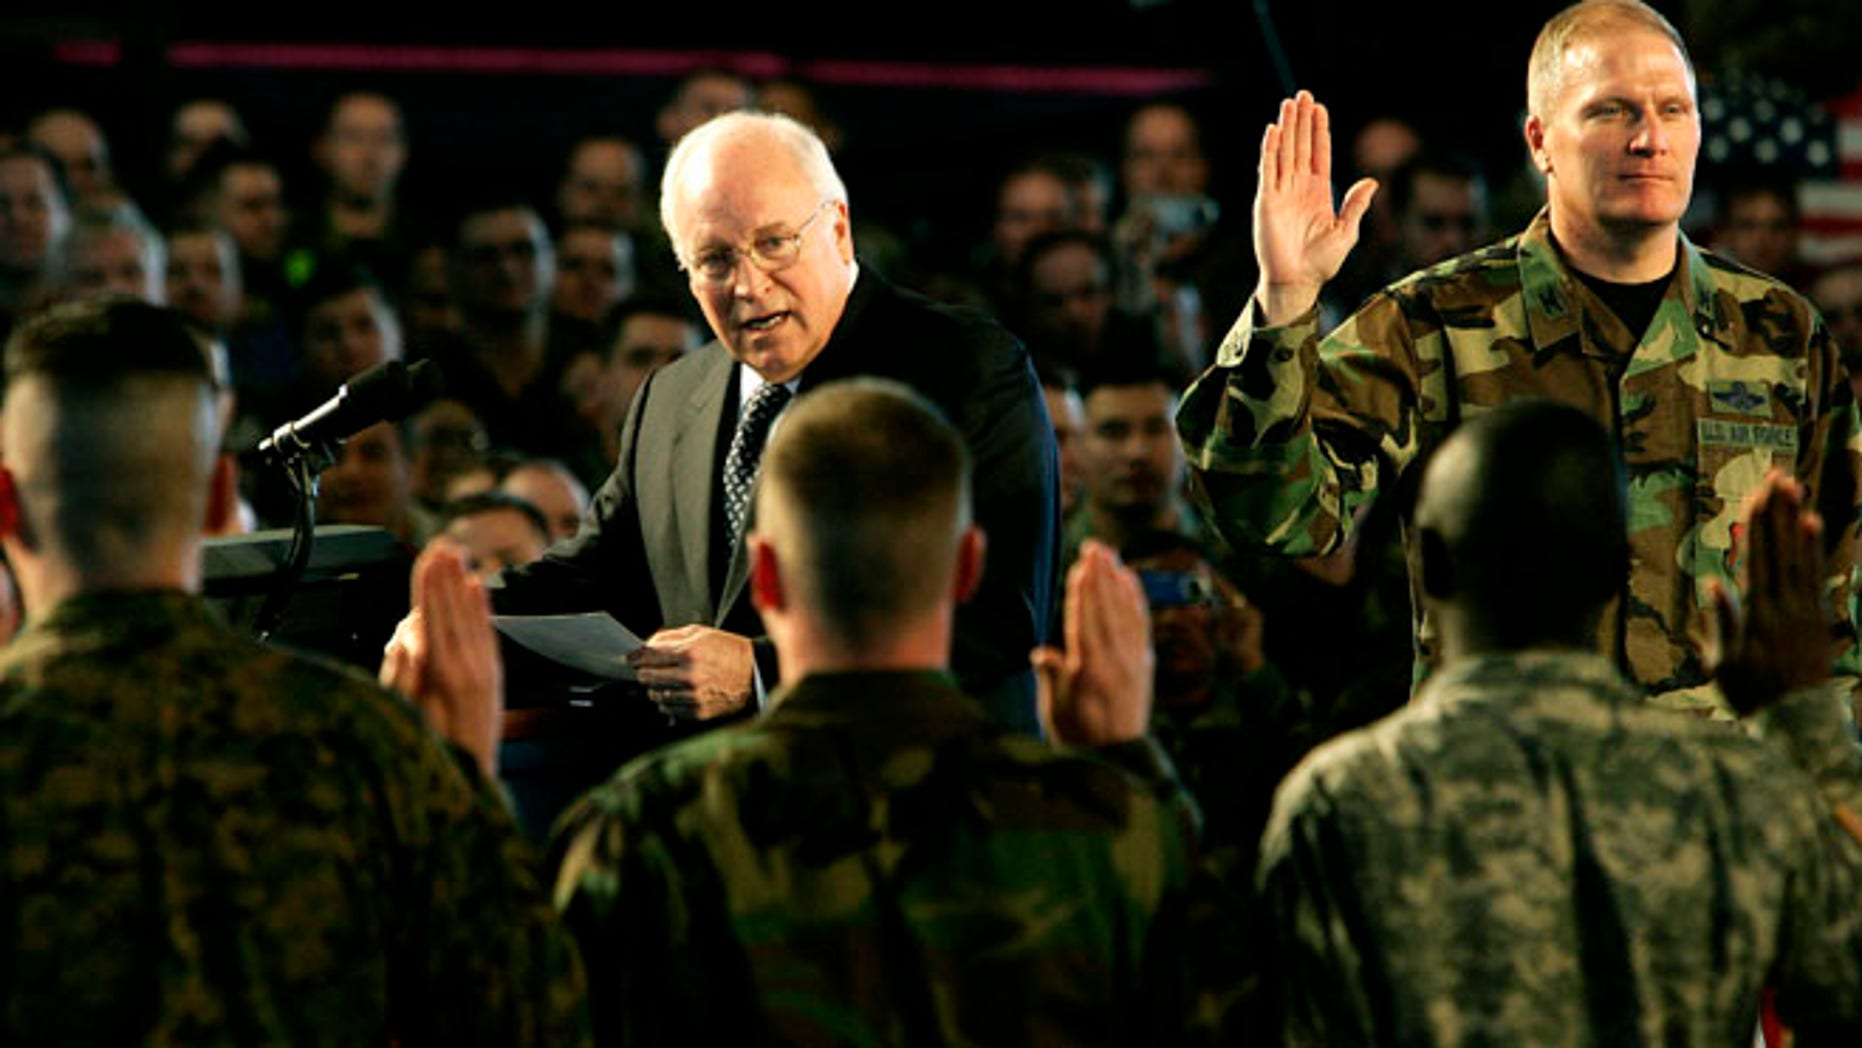 Mar. 21, 2006: U.S. Vice President Dick Cheney leads the reading of an oath with participants in a re-enlistment ceremony for U.S. Air Force Personnel during his visit to Scott Air Force Base in Illinois.